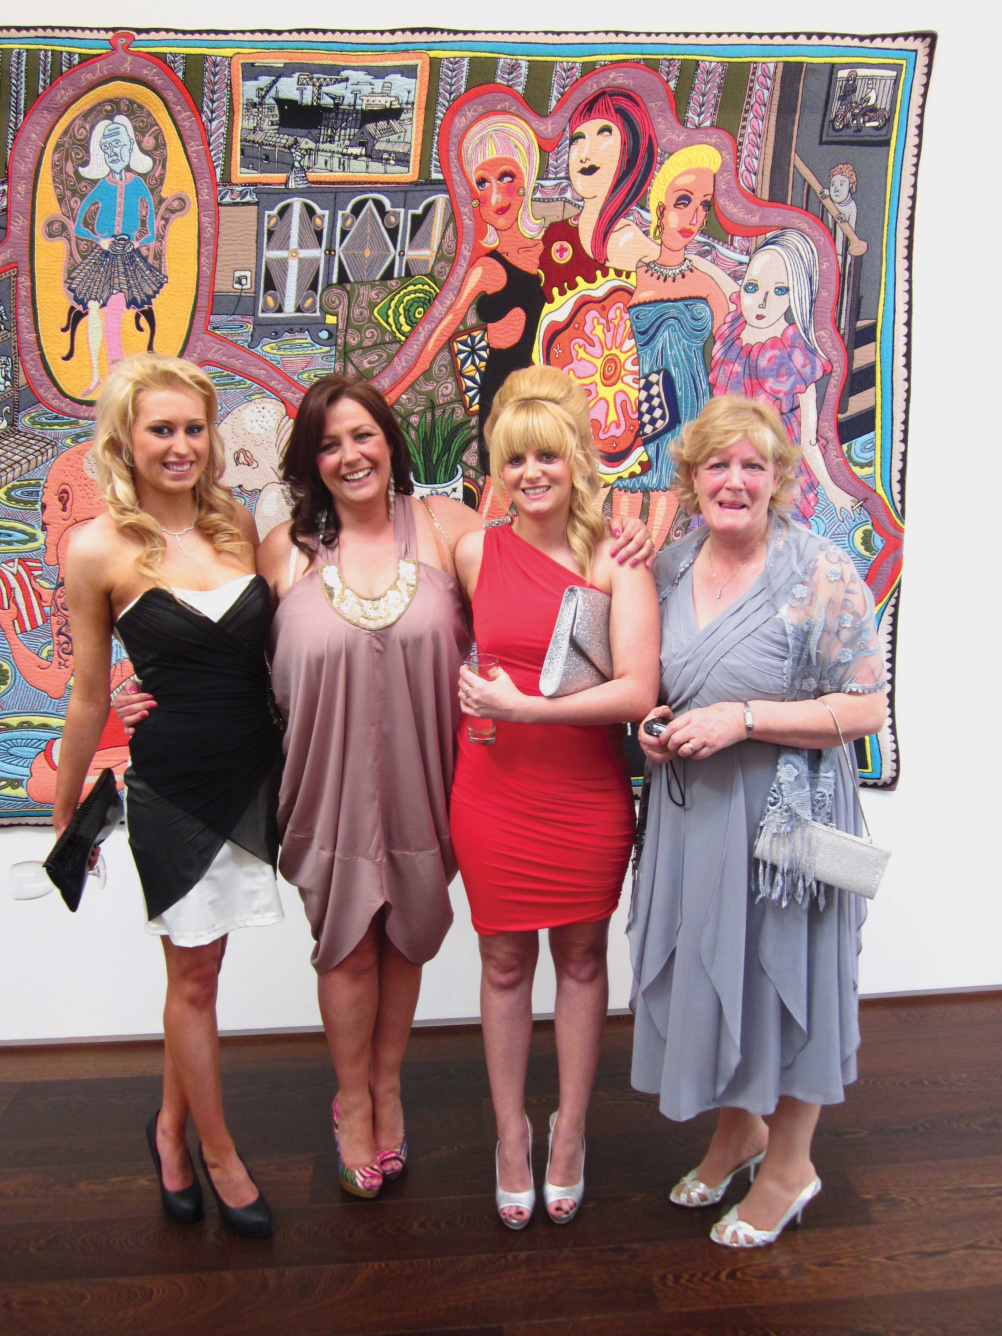 The ladies from Sunderland who inspired part of the tapestry